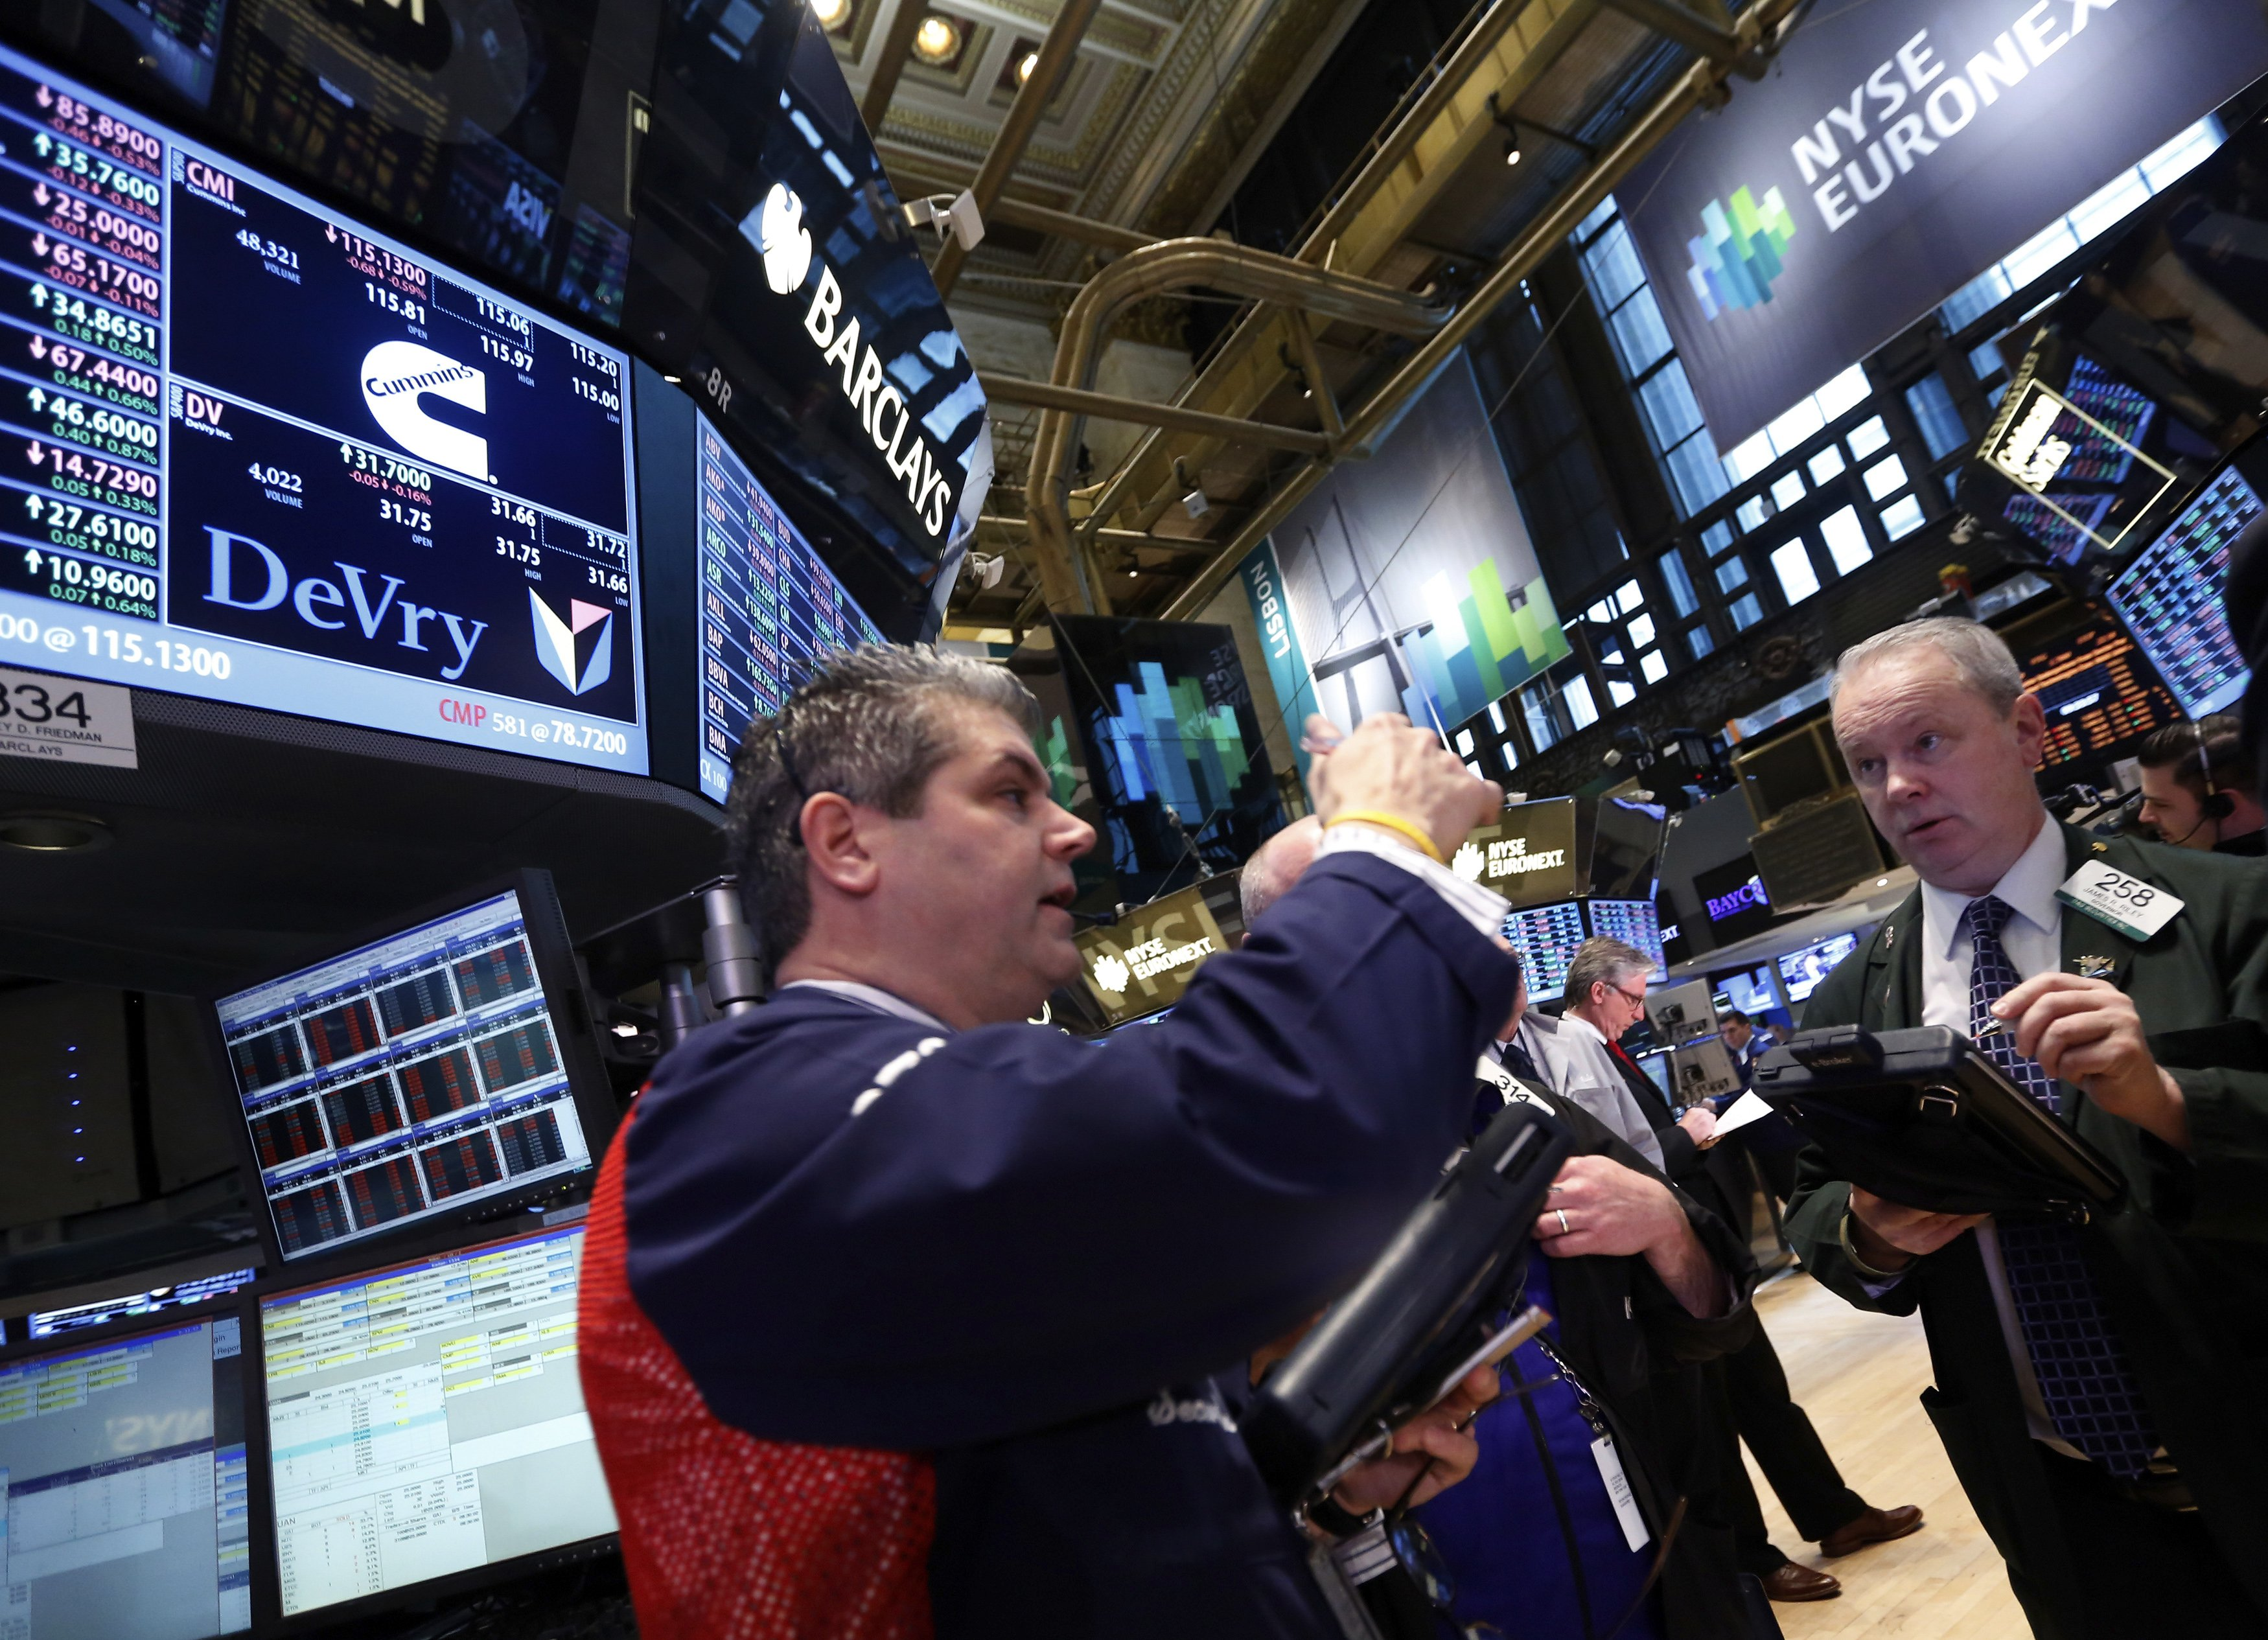 Traders work on the floor at the New York Stock Exchange, April 1, 2013. REUTERS/Brendan McDermid